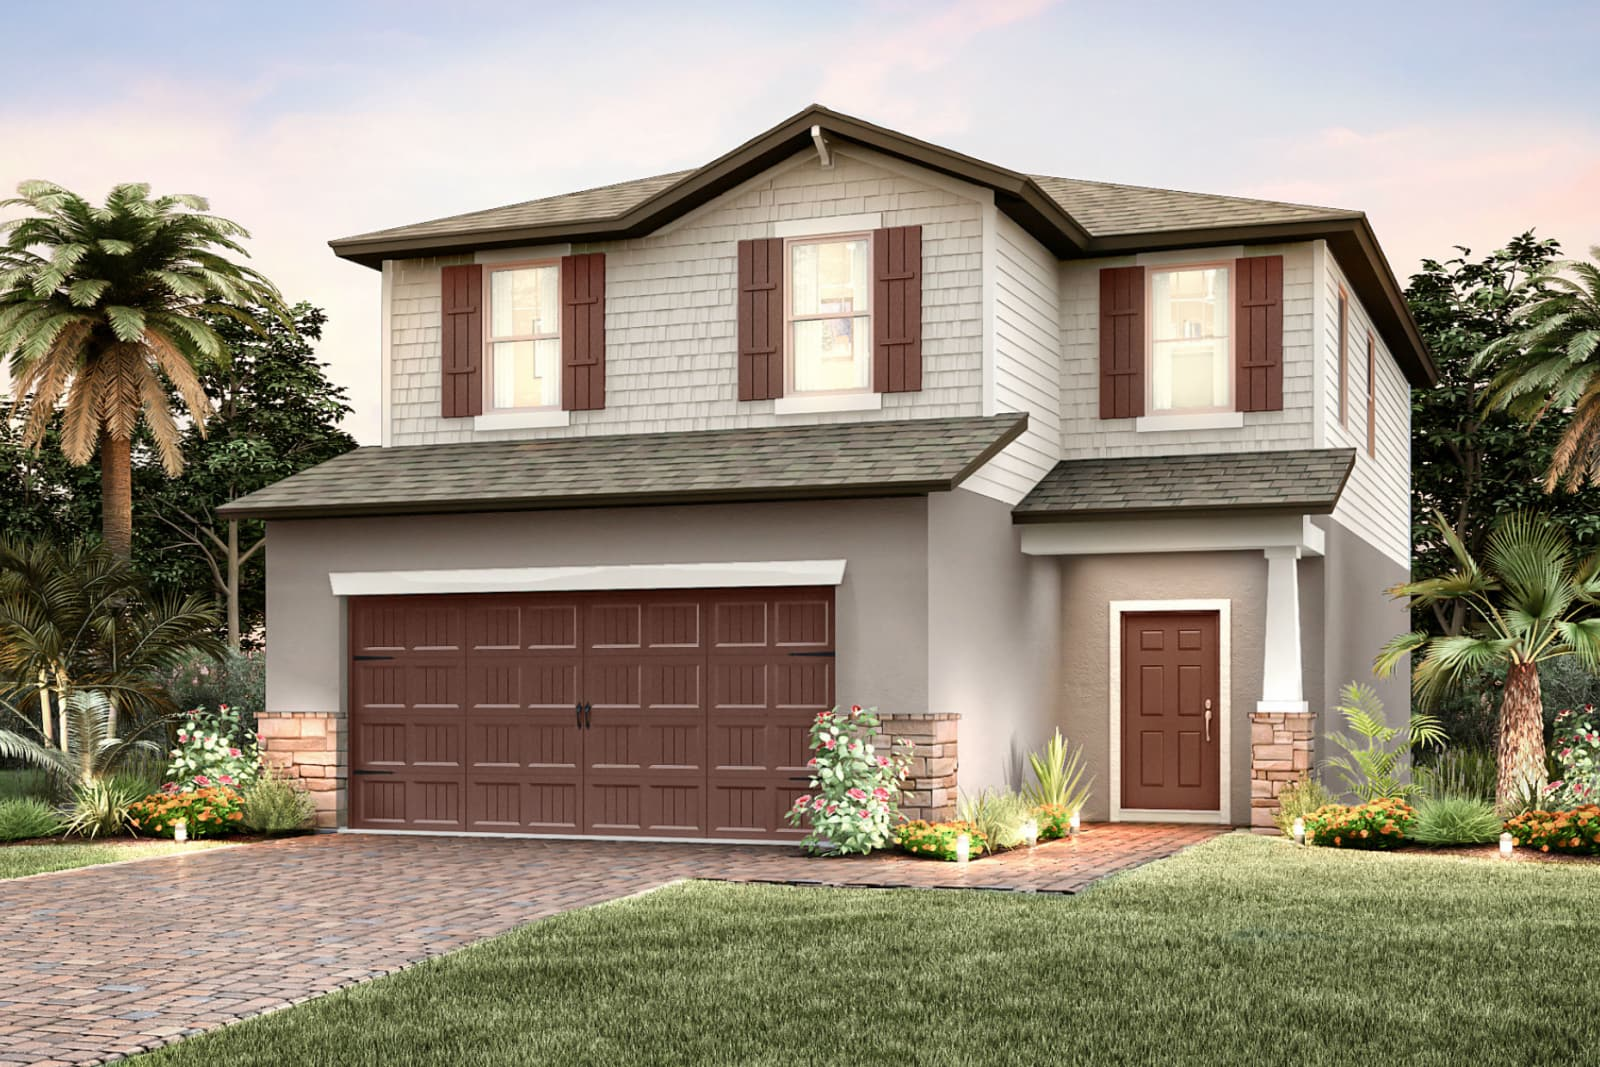 The Starboard At  Ventana Riverview Florida Real Estate   Riverview Realtor   New Homes for Sale   Riverview Florida